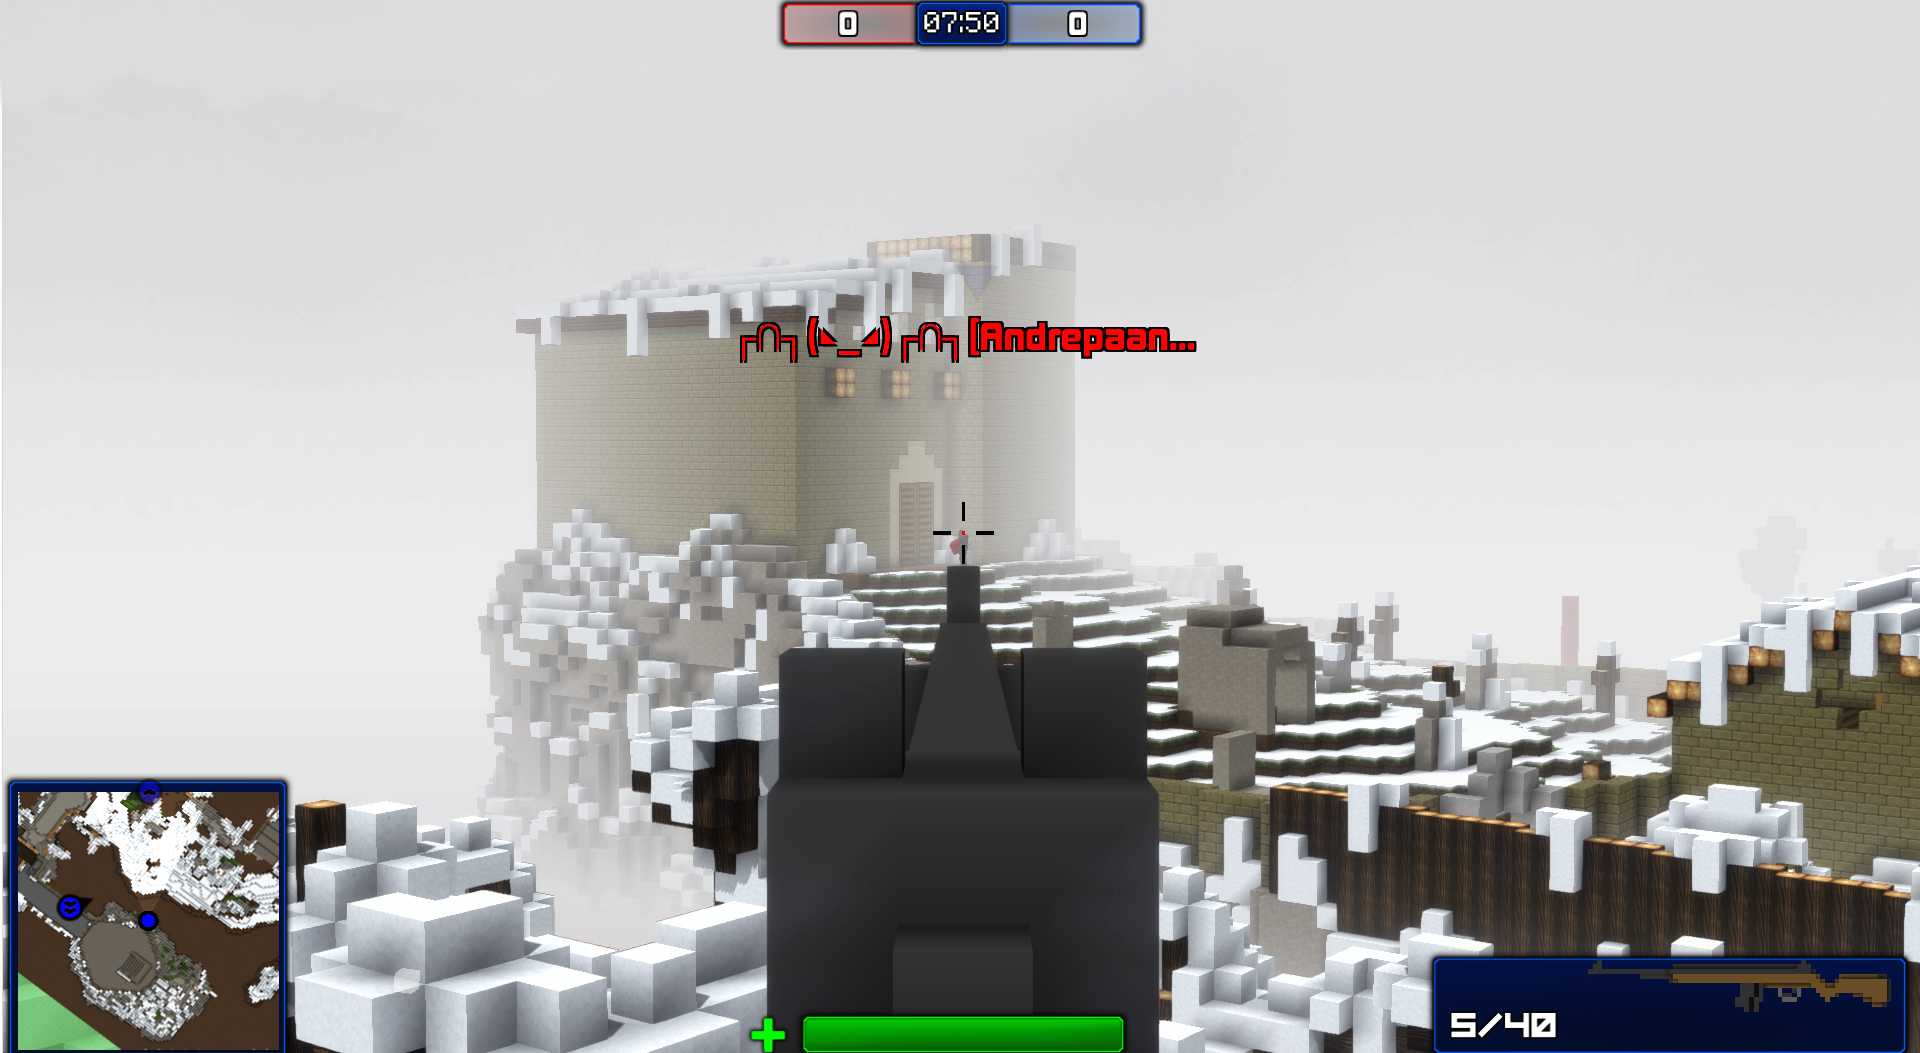 Blockstorm screenshot